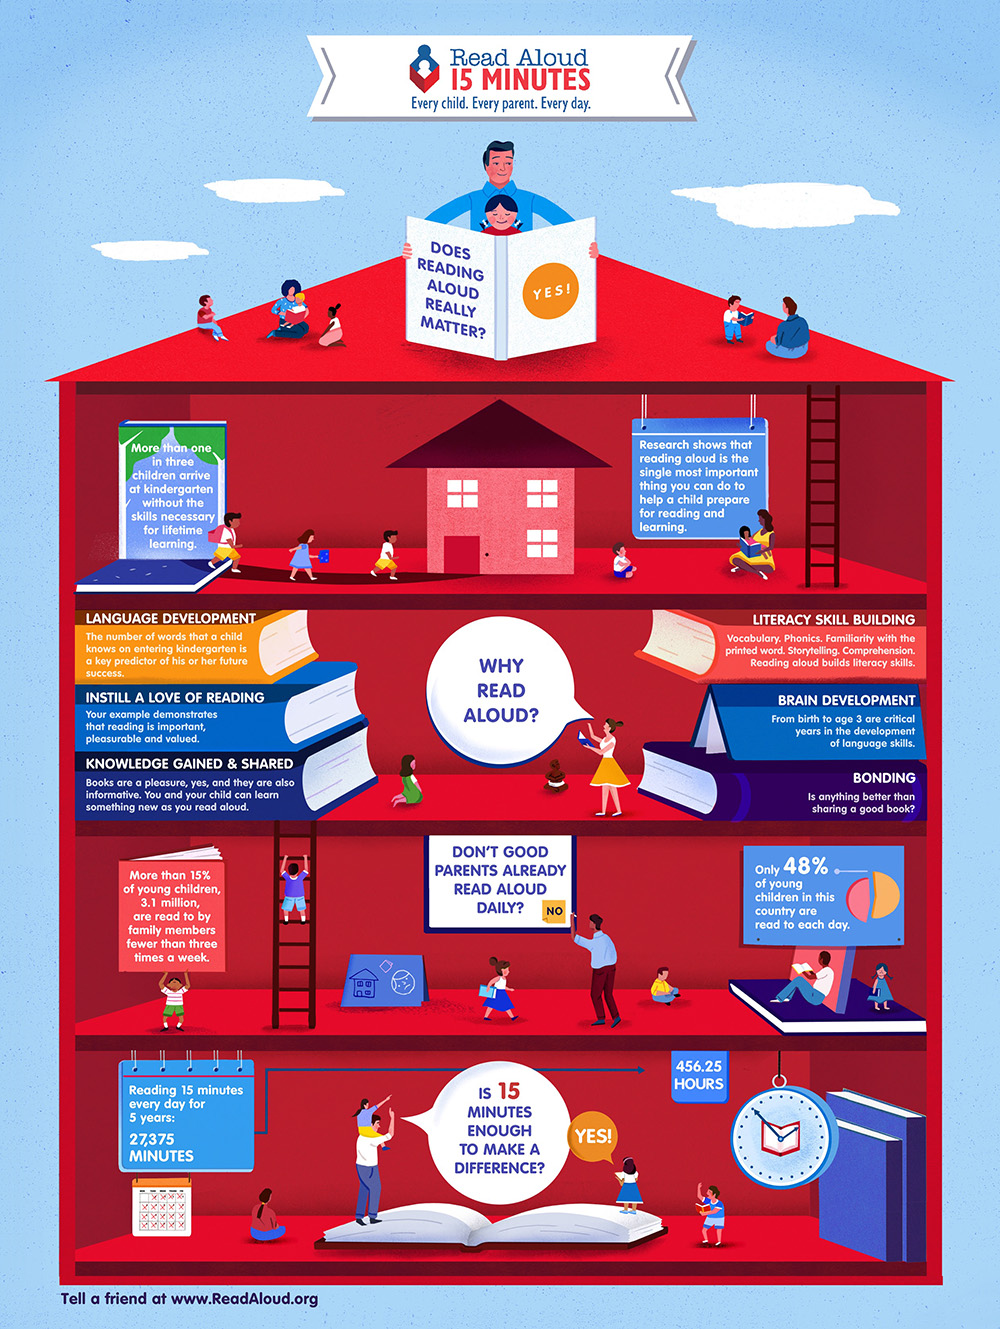 Read Aloud 15 Minutes Infographic